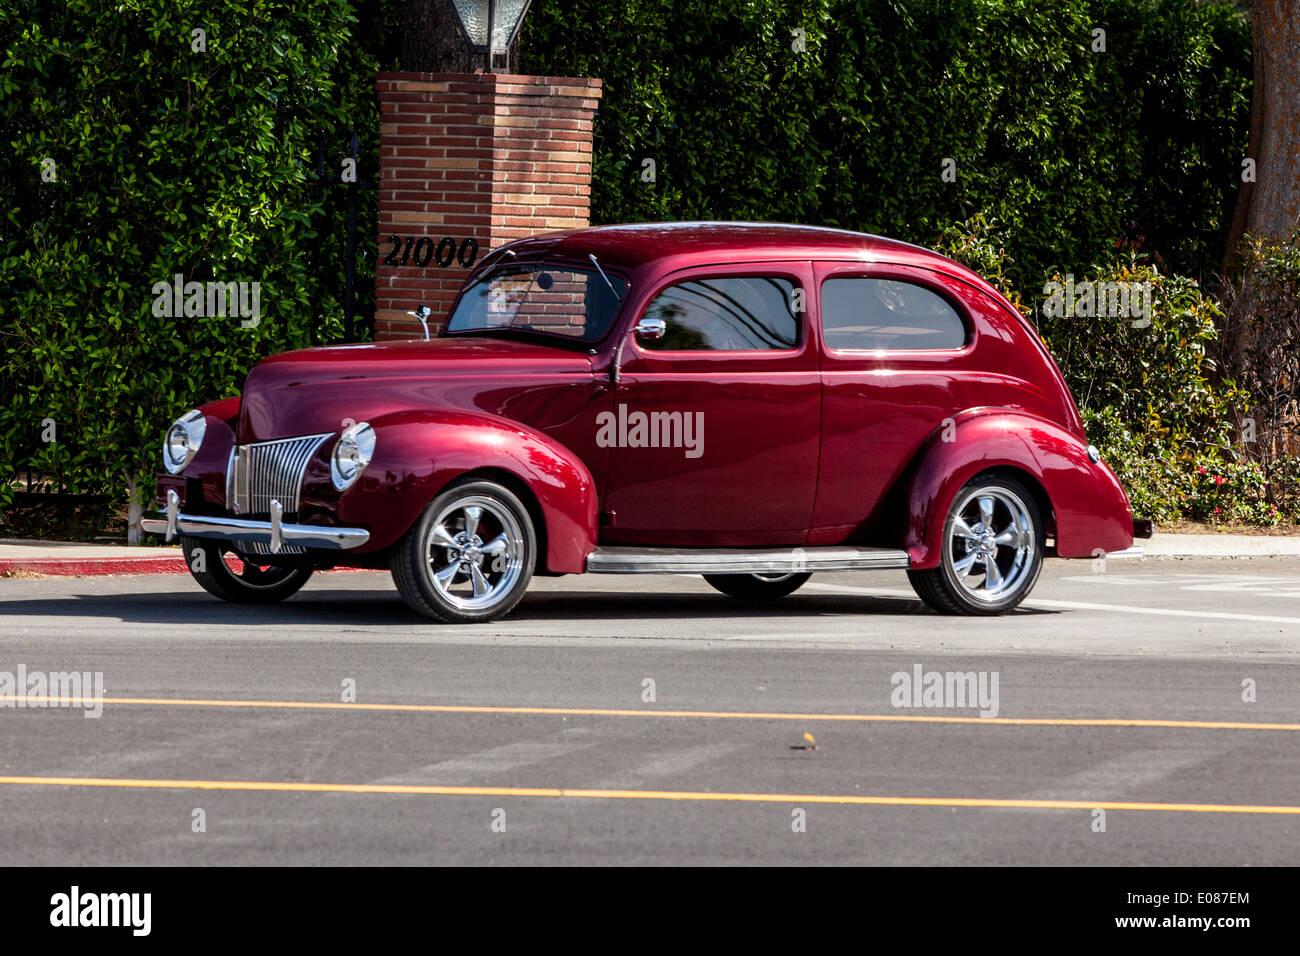 1940 Ford Coupe Stock Photos Images Alamy 1941 Red Sedan Image